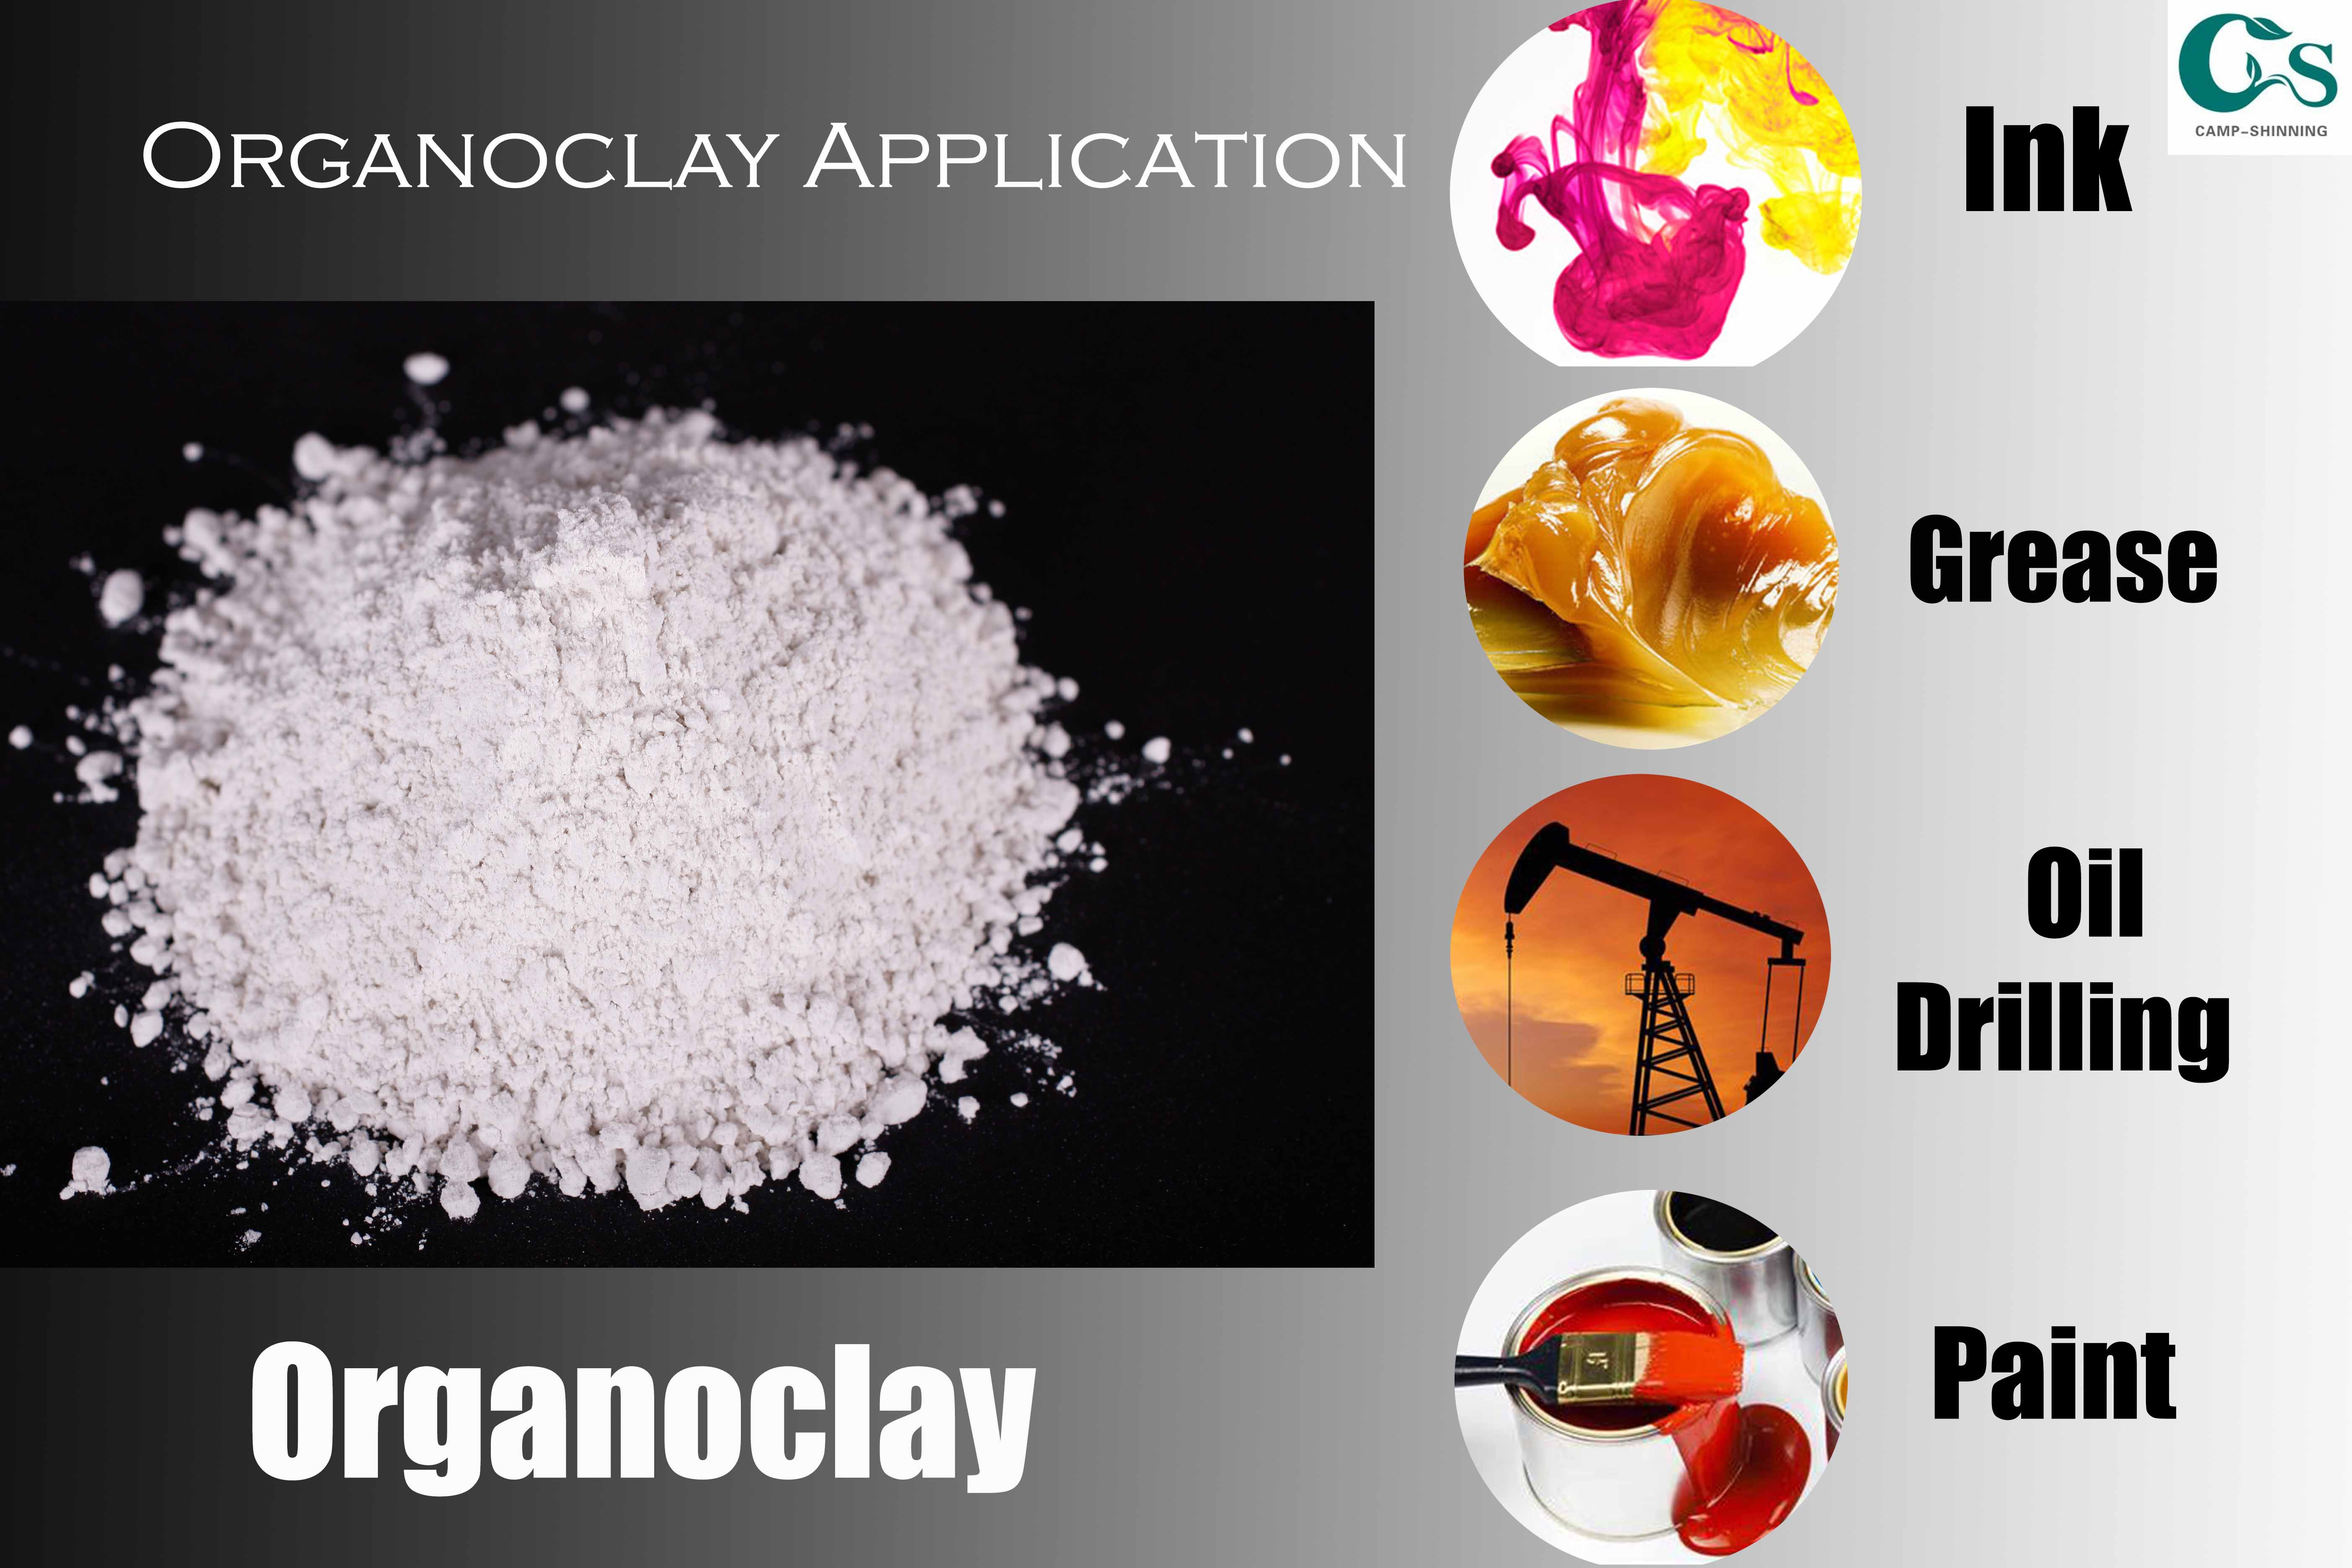 Organoclay CP-720A Used for Grease